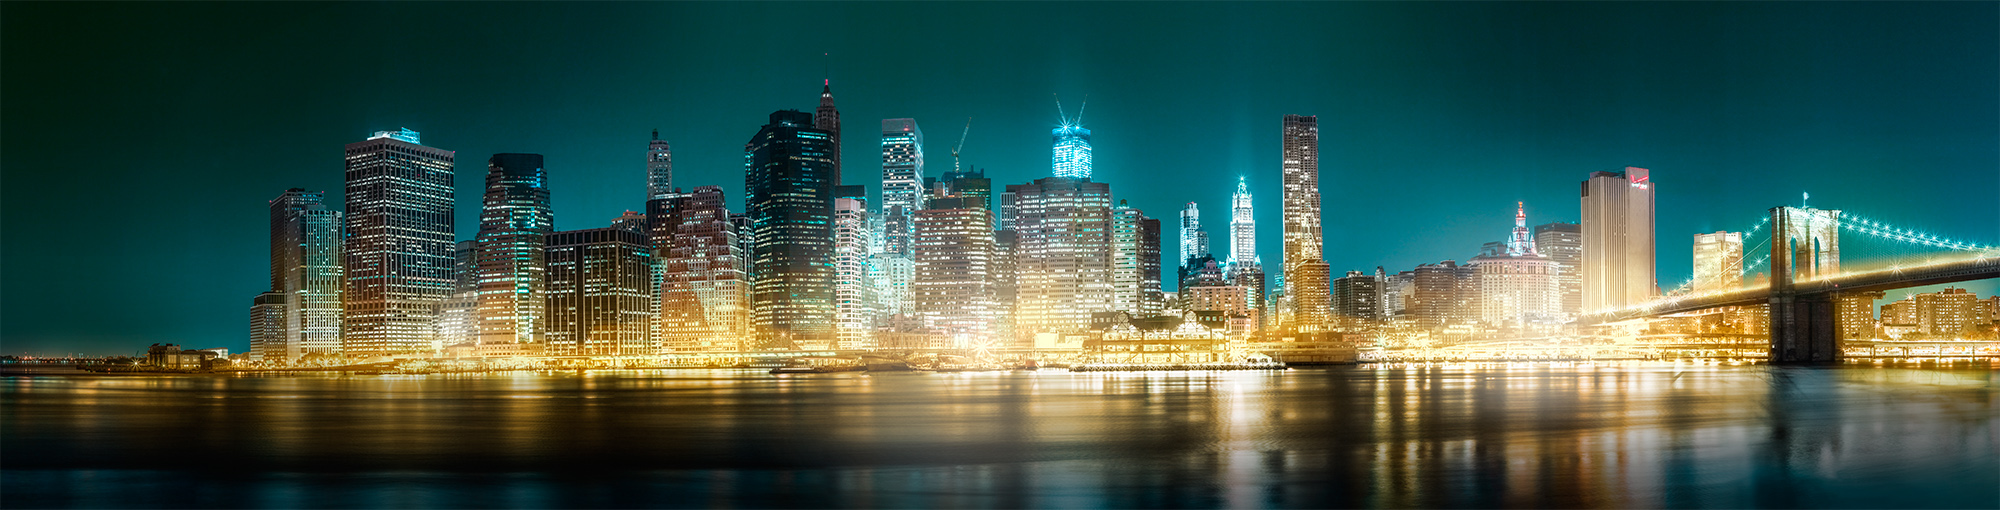 http://pixelcreate.de/MM/panorama_new-york_night_2000.jpg